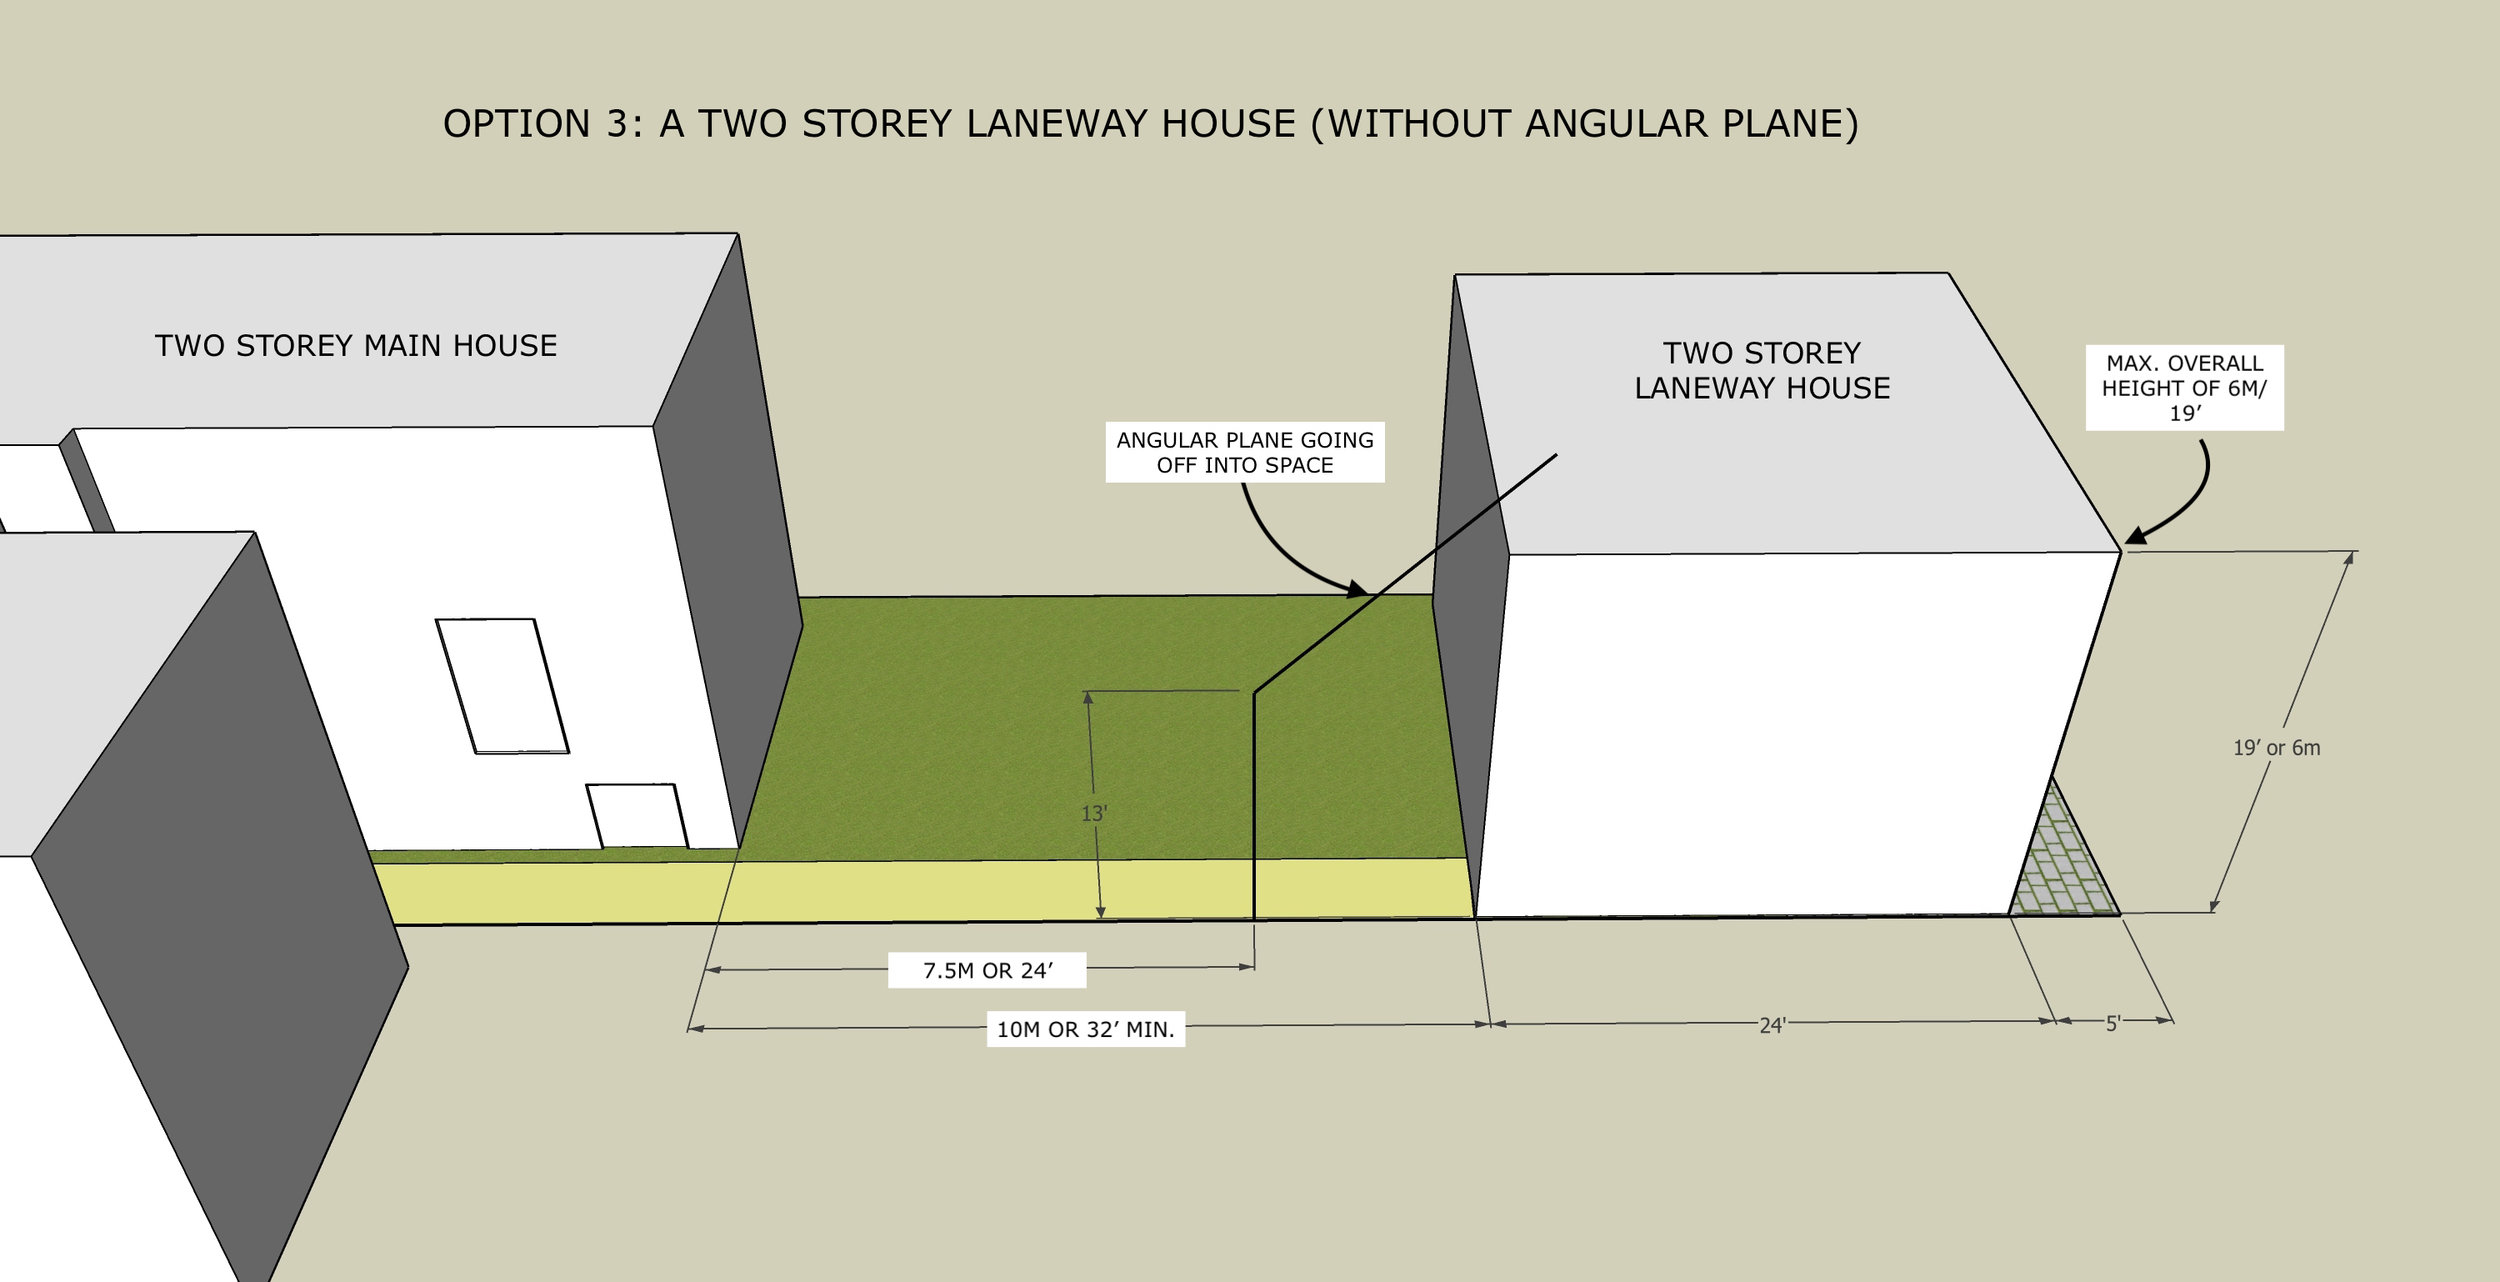 Sketch showing a smaller size two storey laneway suite on the same site, setback further from the main house to get beyond the angular plane requirement.